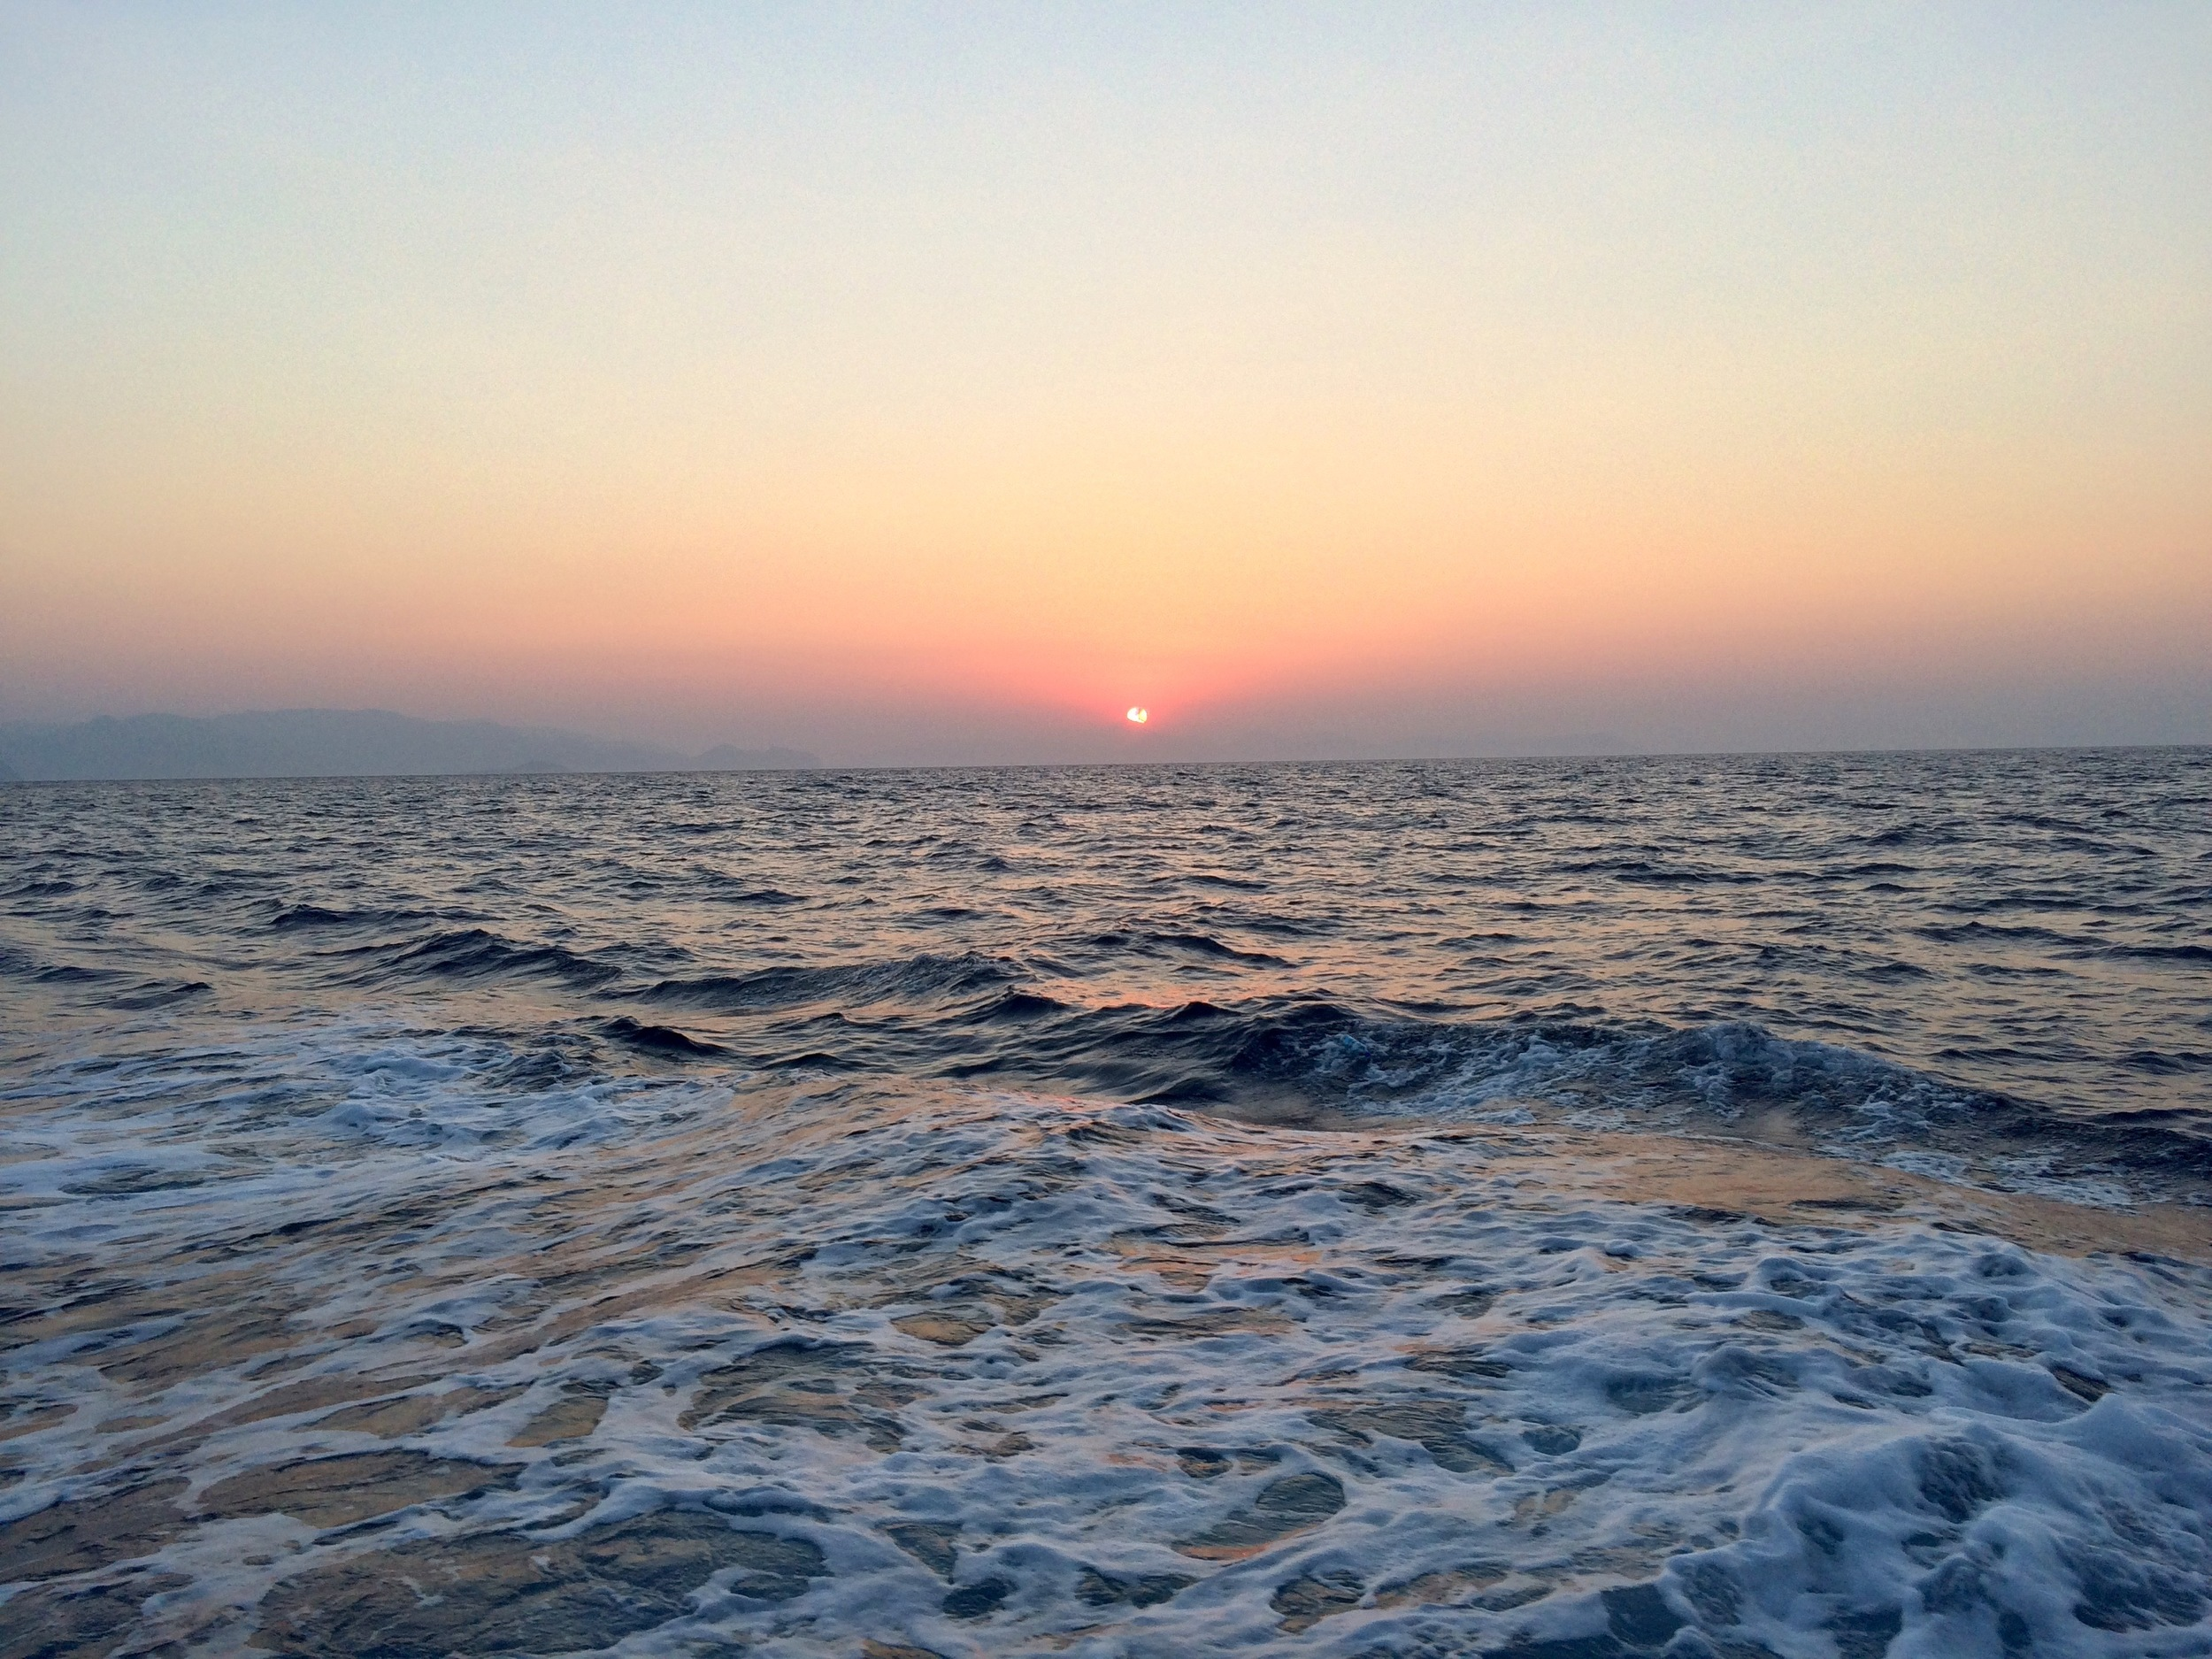 The sun was rising as we left the Turkish coast